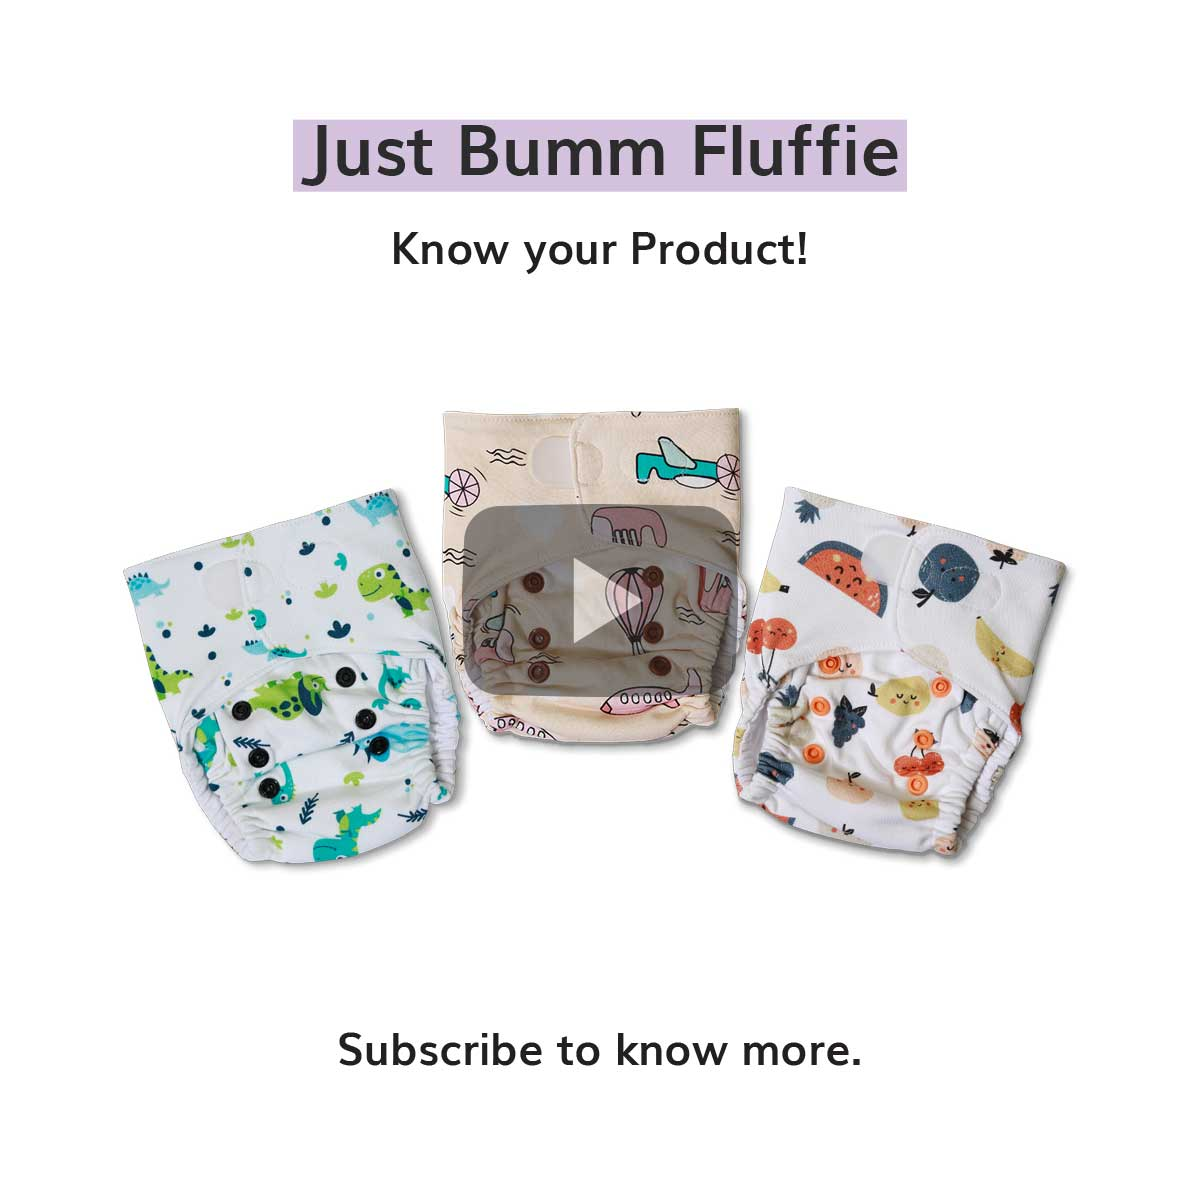 What is Just Bumm Fluffie? - Know your product